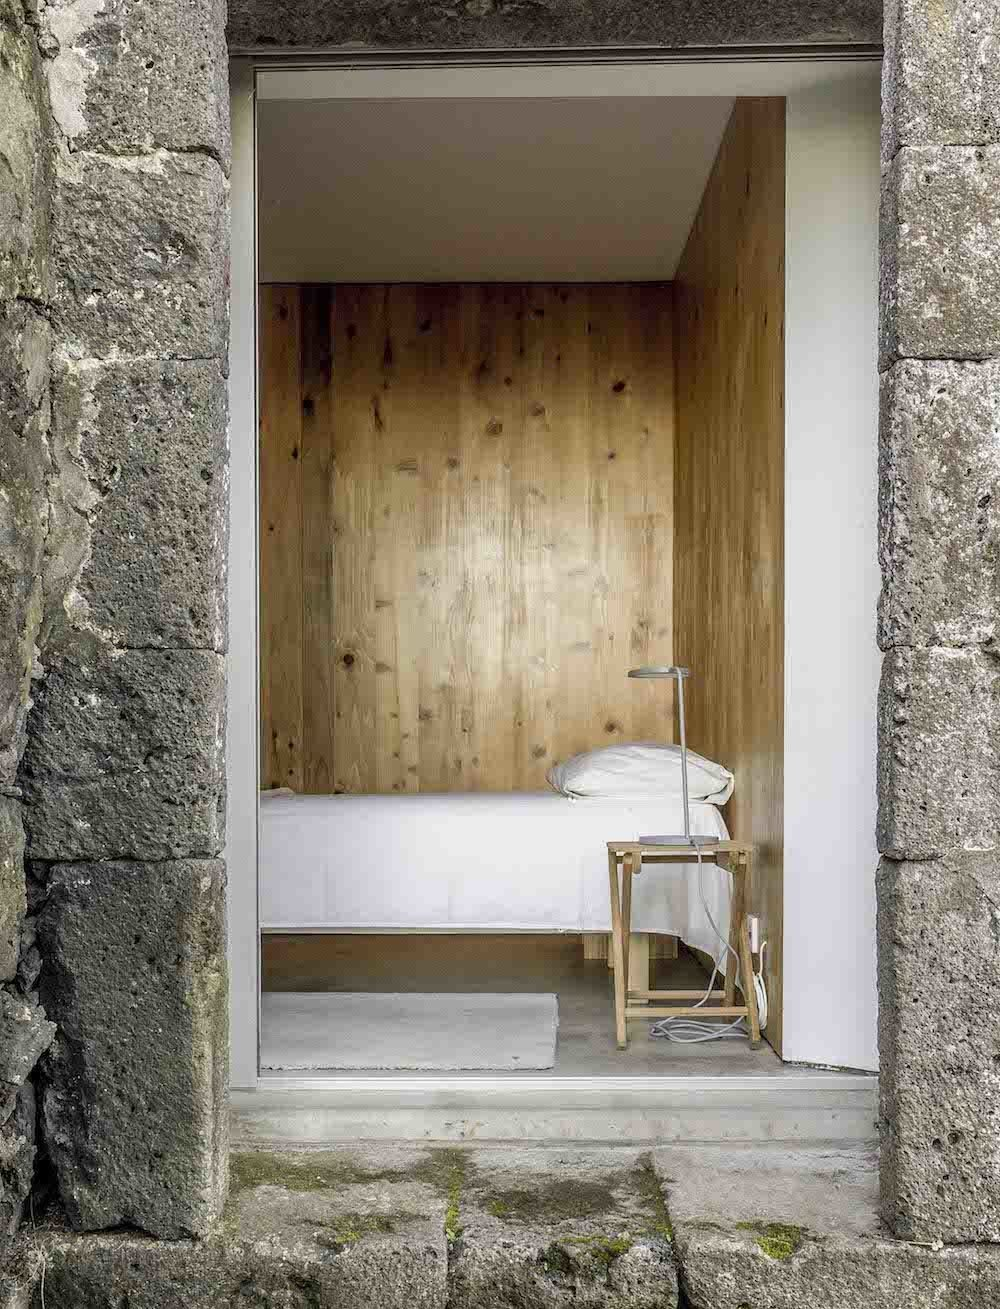 Bedroom and Bed Warm wooden walls ensure the simple bedroom setup, a low mattress next to a Muuto Leaf table lamp, offers more comfort than the cold stone exterior.  Best Photos from This Modern Coastal Escape Sits Within 18th-Century Stone Walls